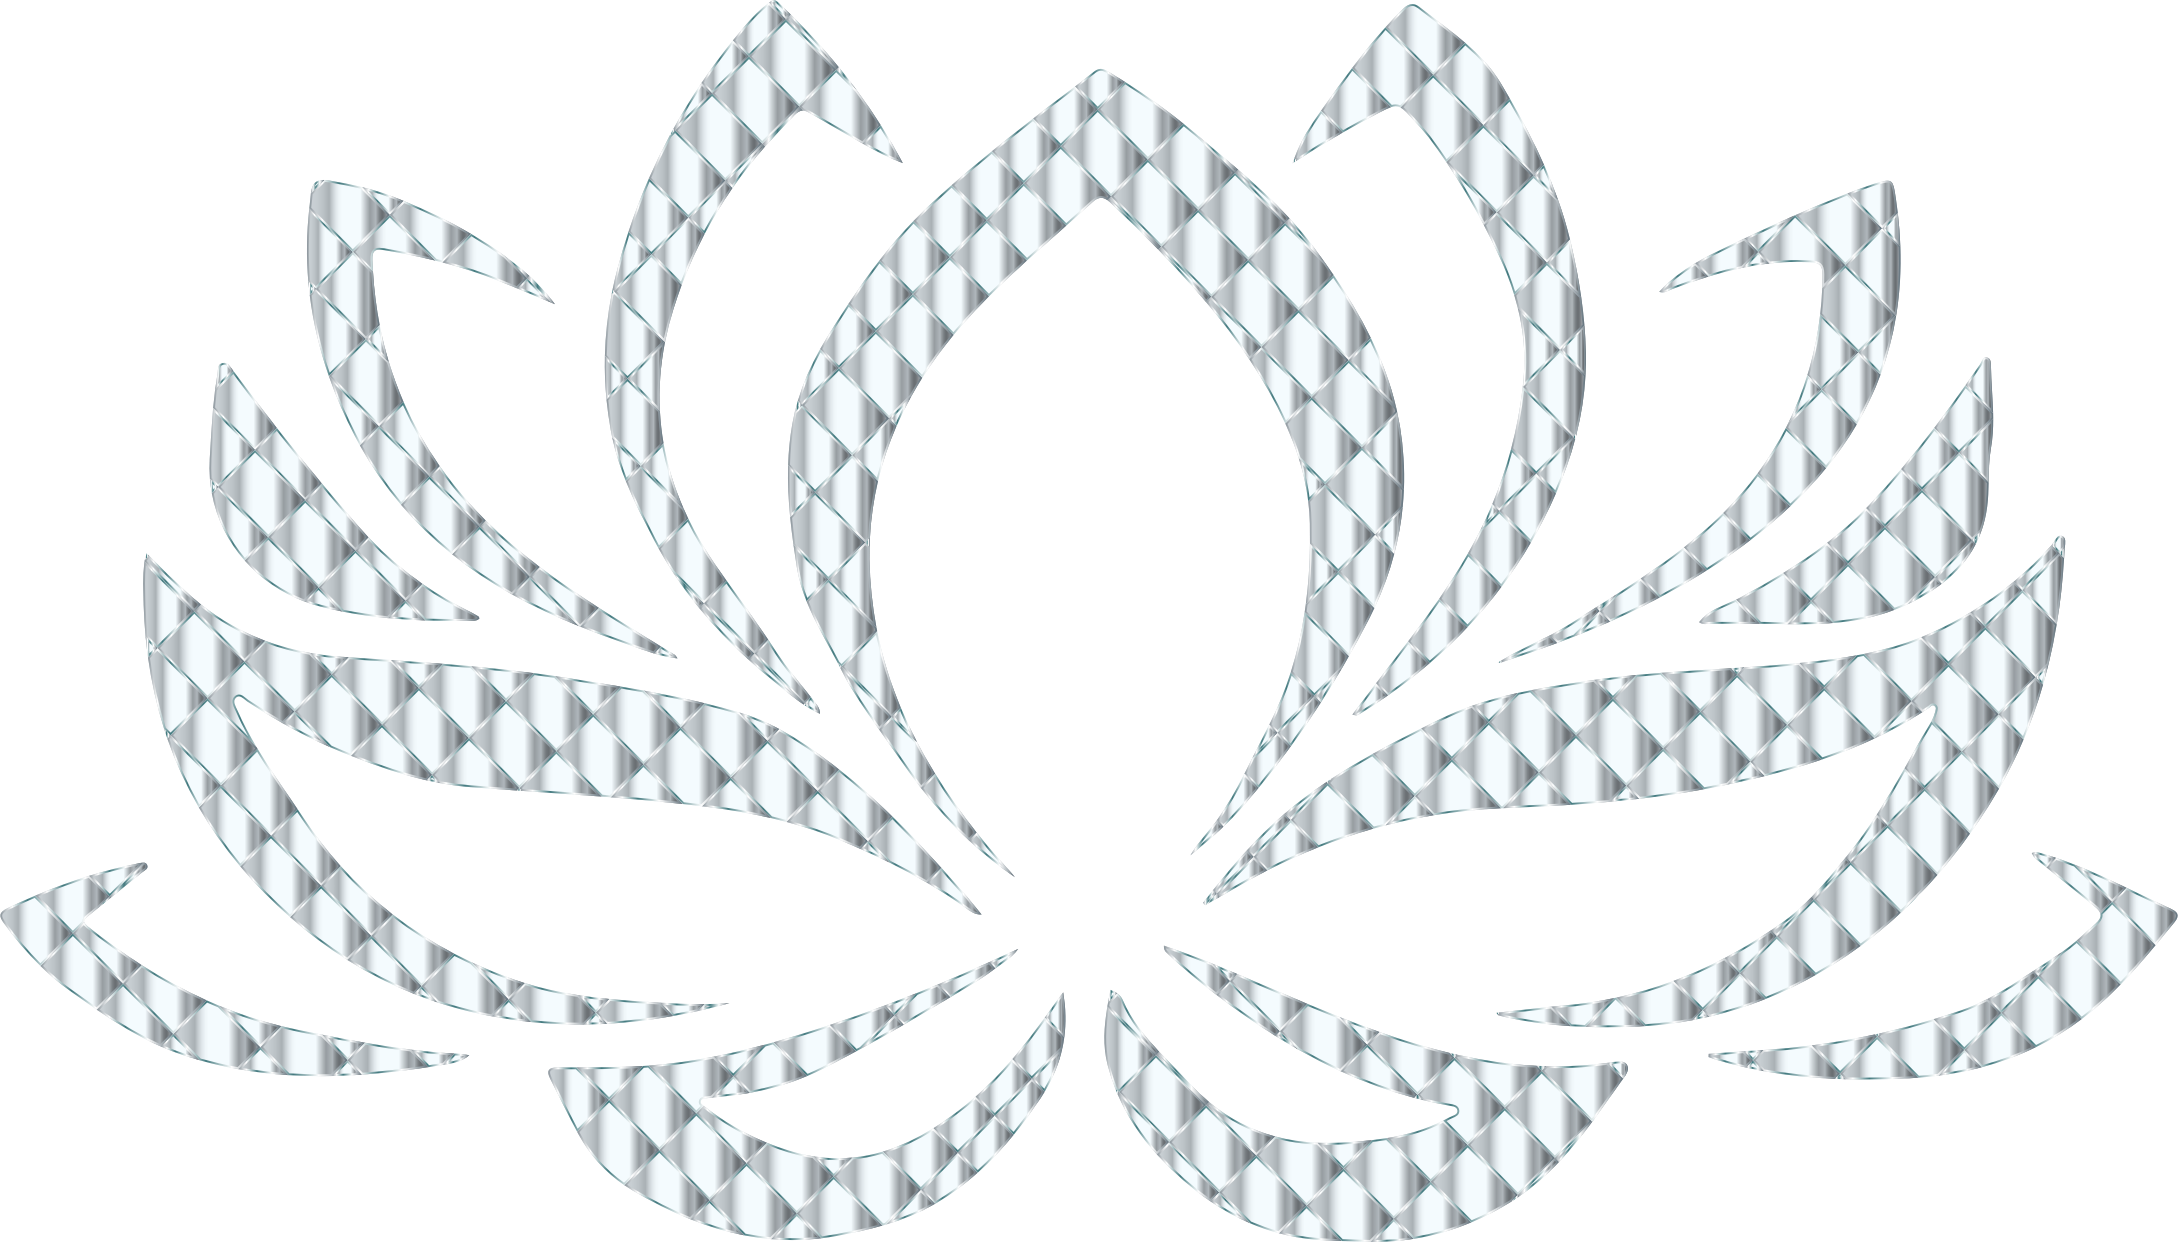 Flower no background clipart clipart royalty free Clipart - Silver Lotus Flower No Background clipart royalty free